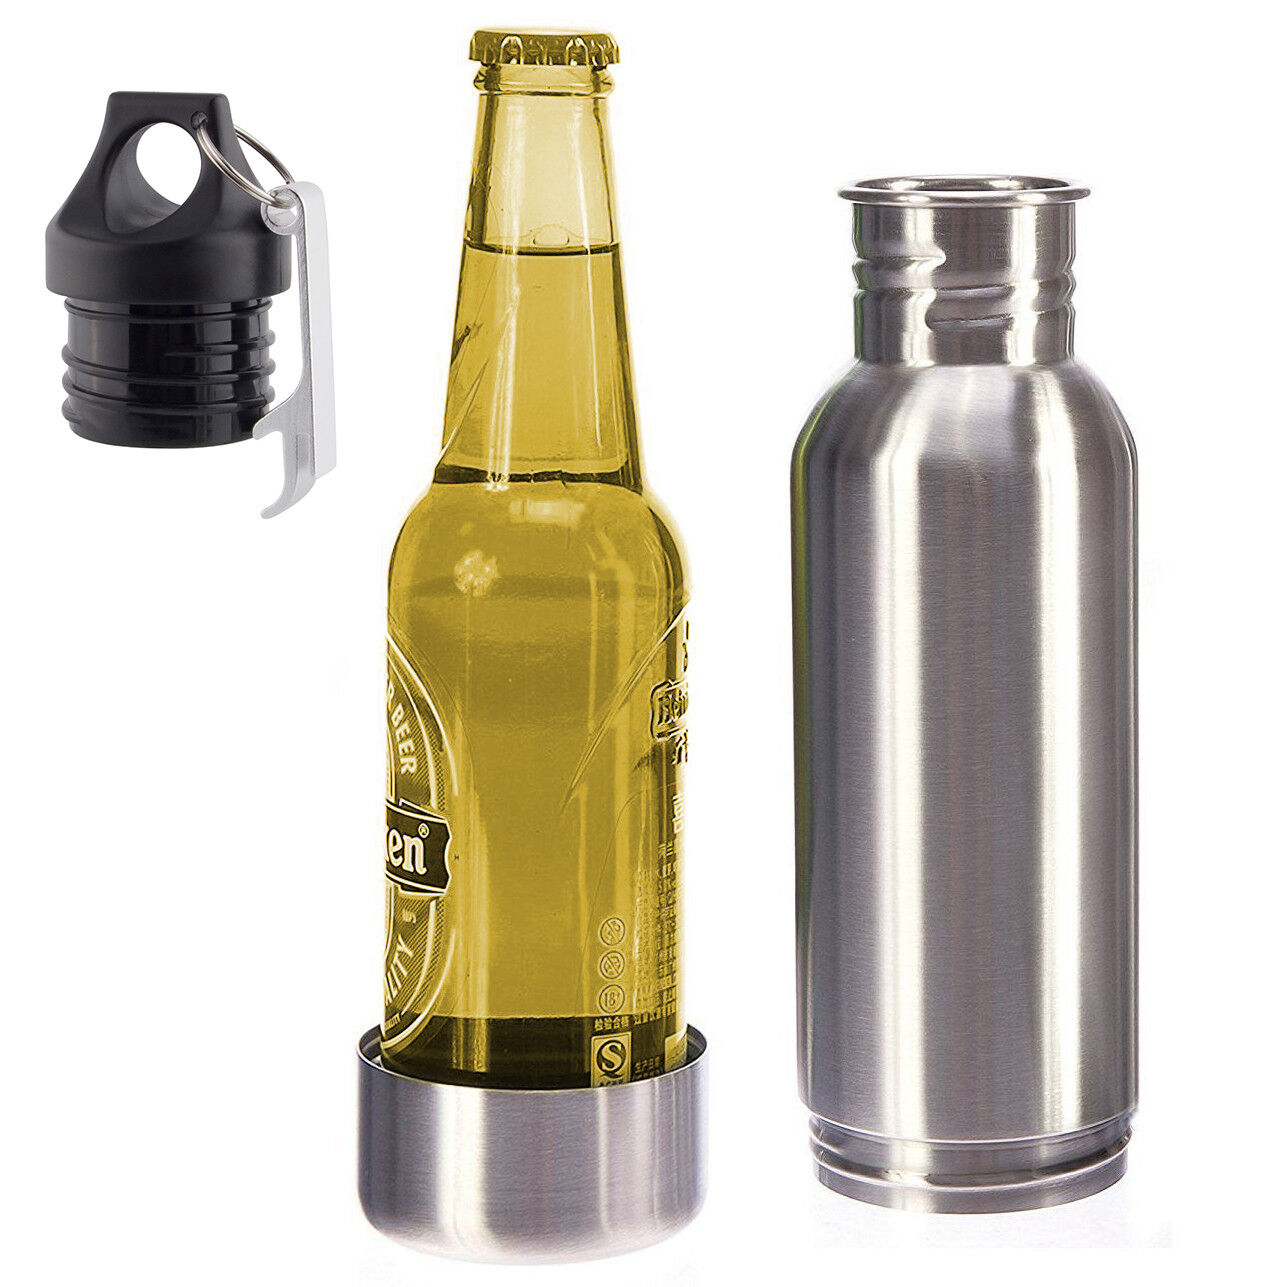 12oz Stainless Steel Beer Bottle Cooler Cold Keeper Bottle I